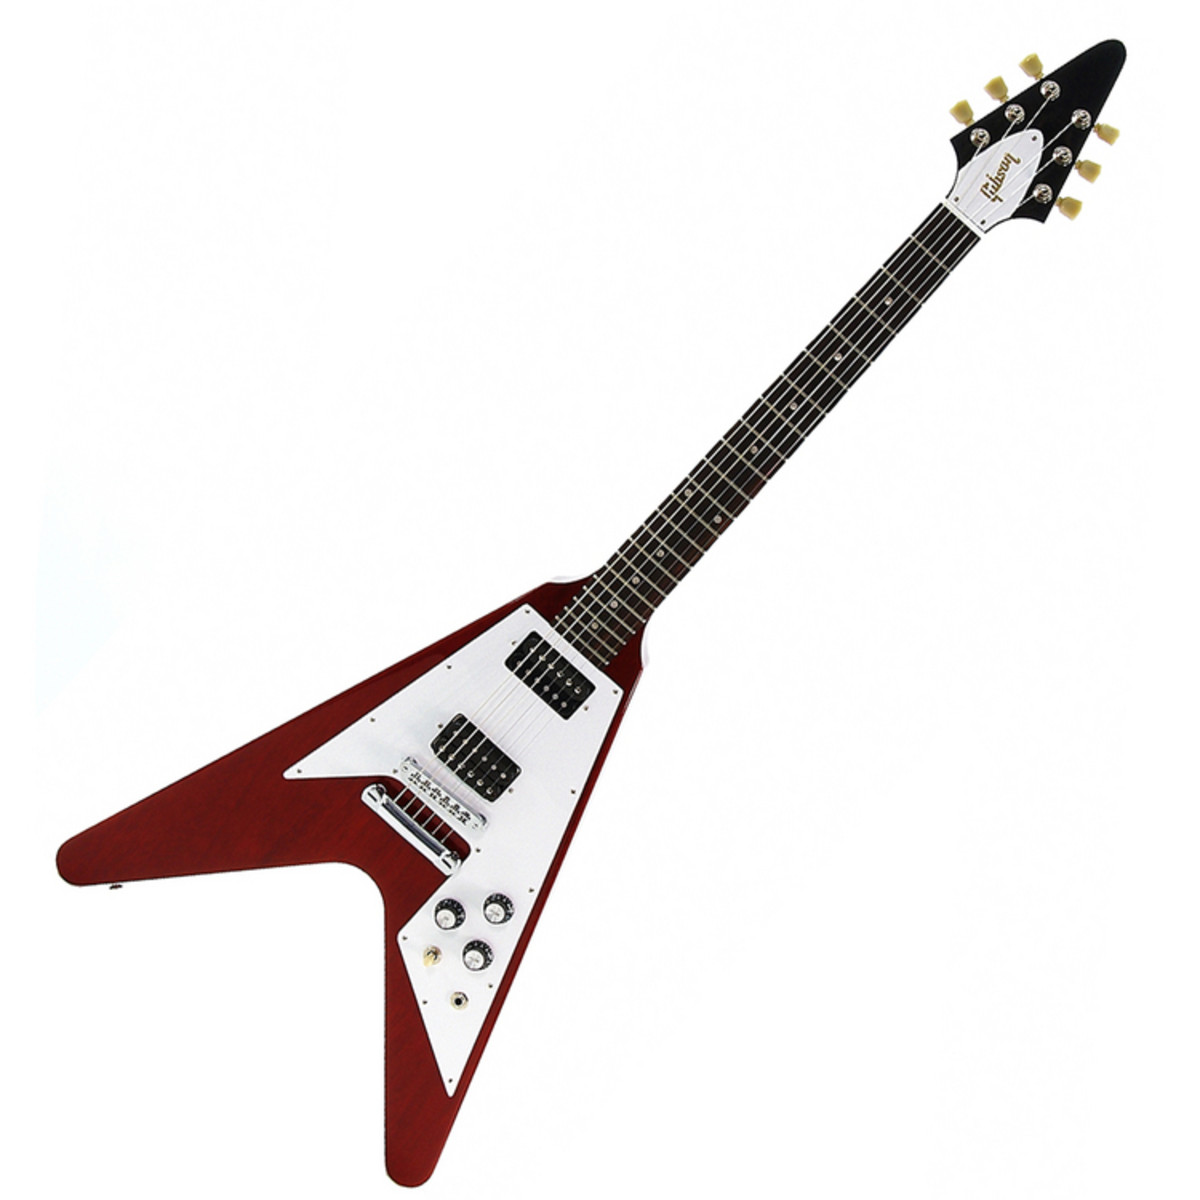 gibson 1968 2008 flying v worn cherry guitar at gear4music. Black Bedroom Furniture Sets. Home Design Ideas